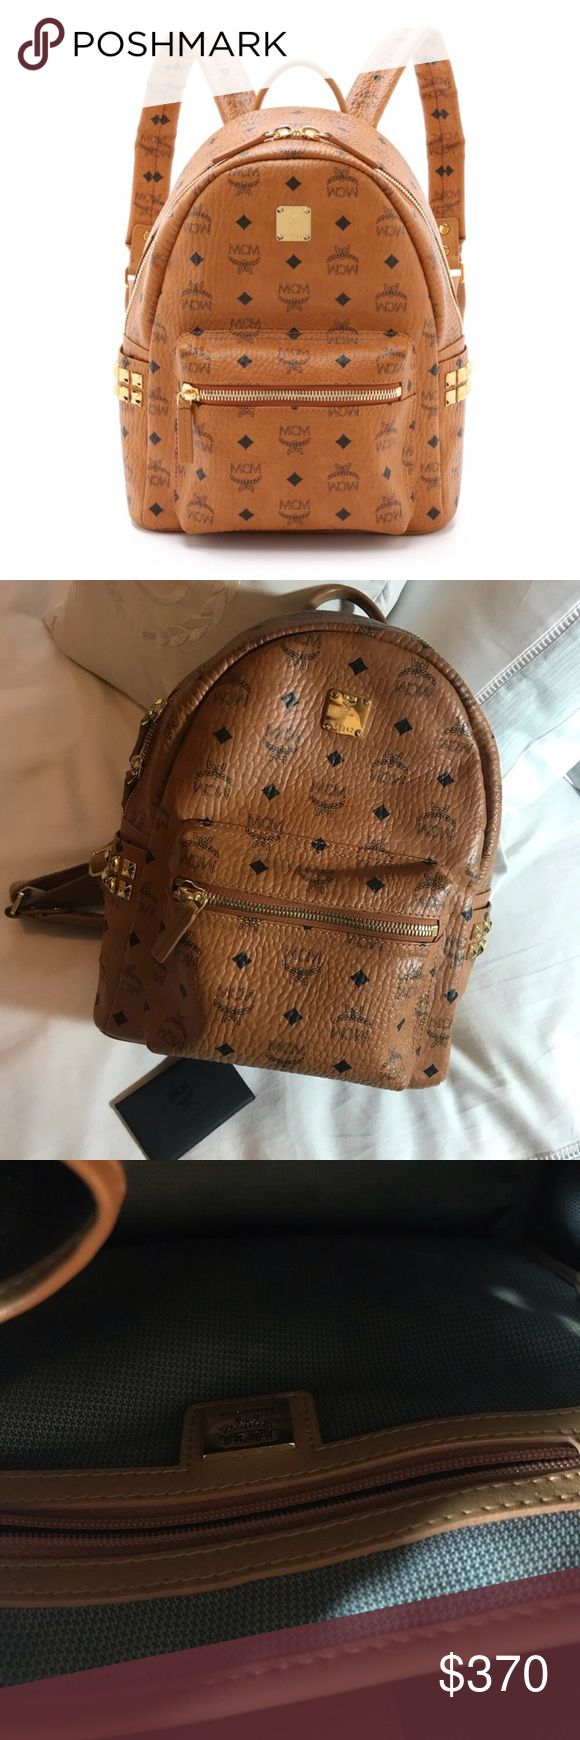 """MCM Small Stark Backpack Used condition. Almost perfect other than the straps being a little worn and three small cracks in the leather on the right inner strap (unnoticeable). Comes with authenticity cards and tag. 10"""" W x 13"""" H x 4"""" D. (Interior capacity:medium) price is firm. MCM Bags Backpacks"""